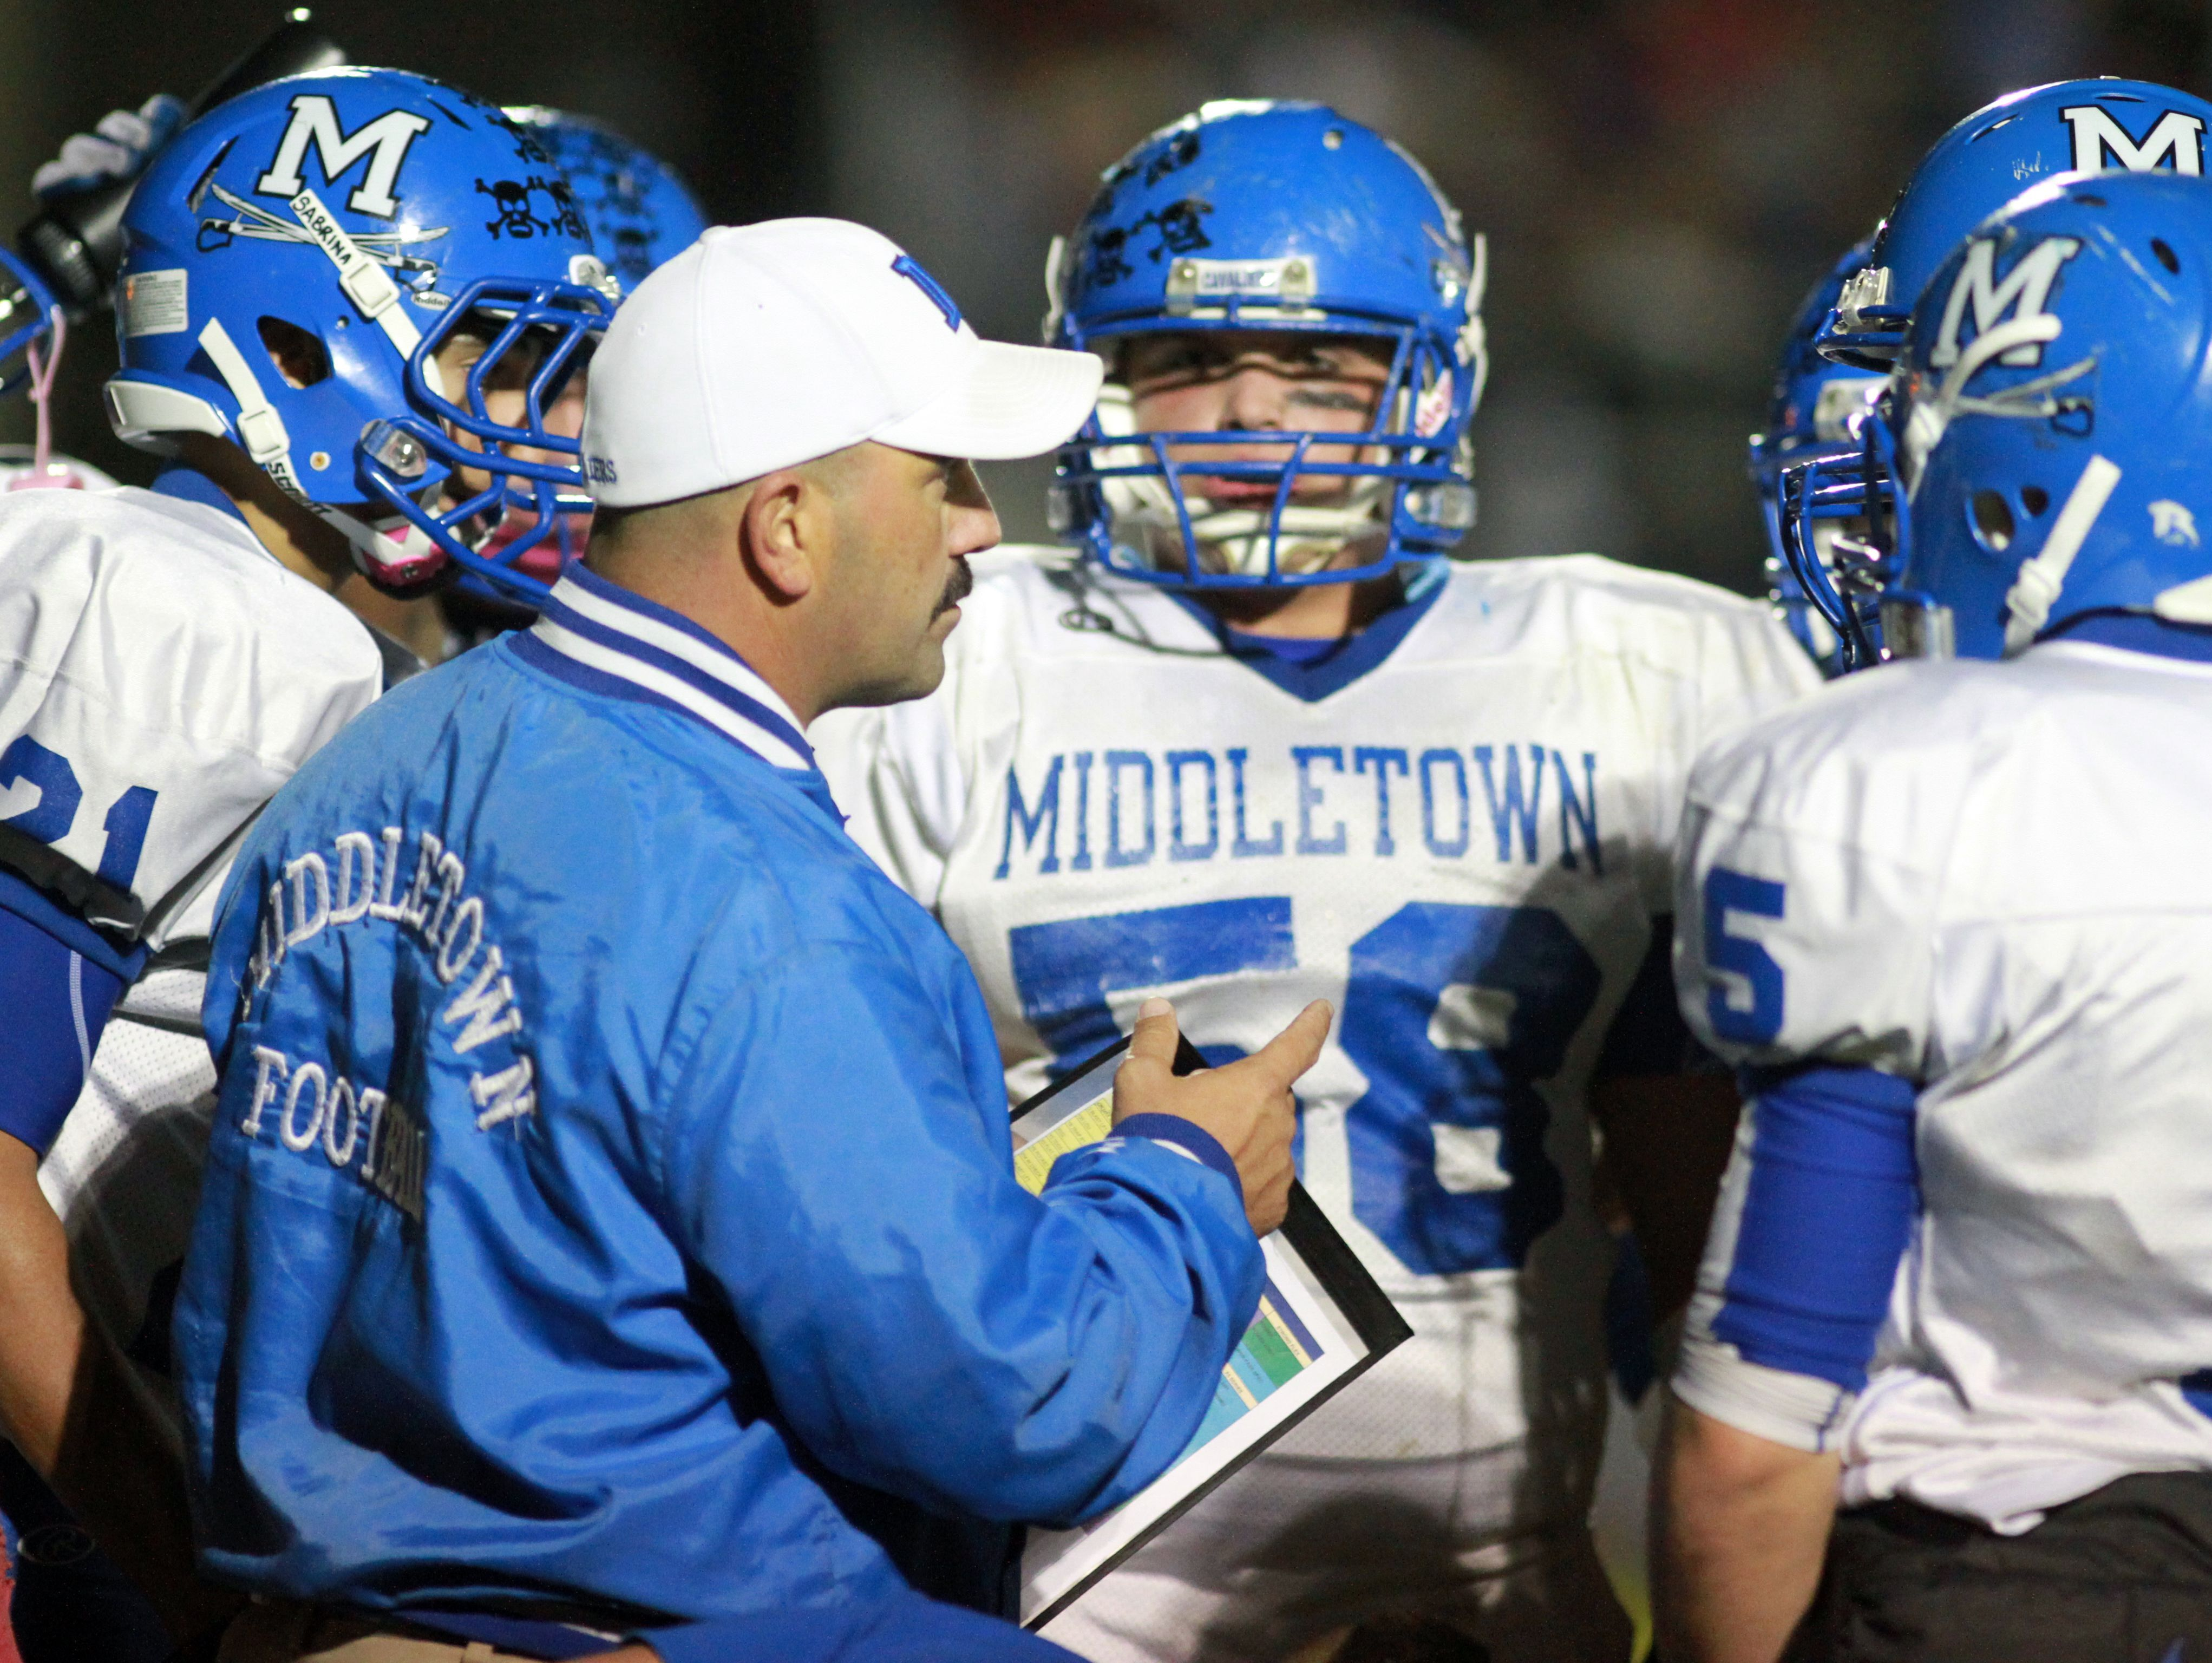 Middletown coach Mark DelPercio works with his team in a second quarter break.